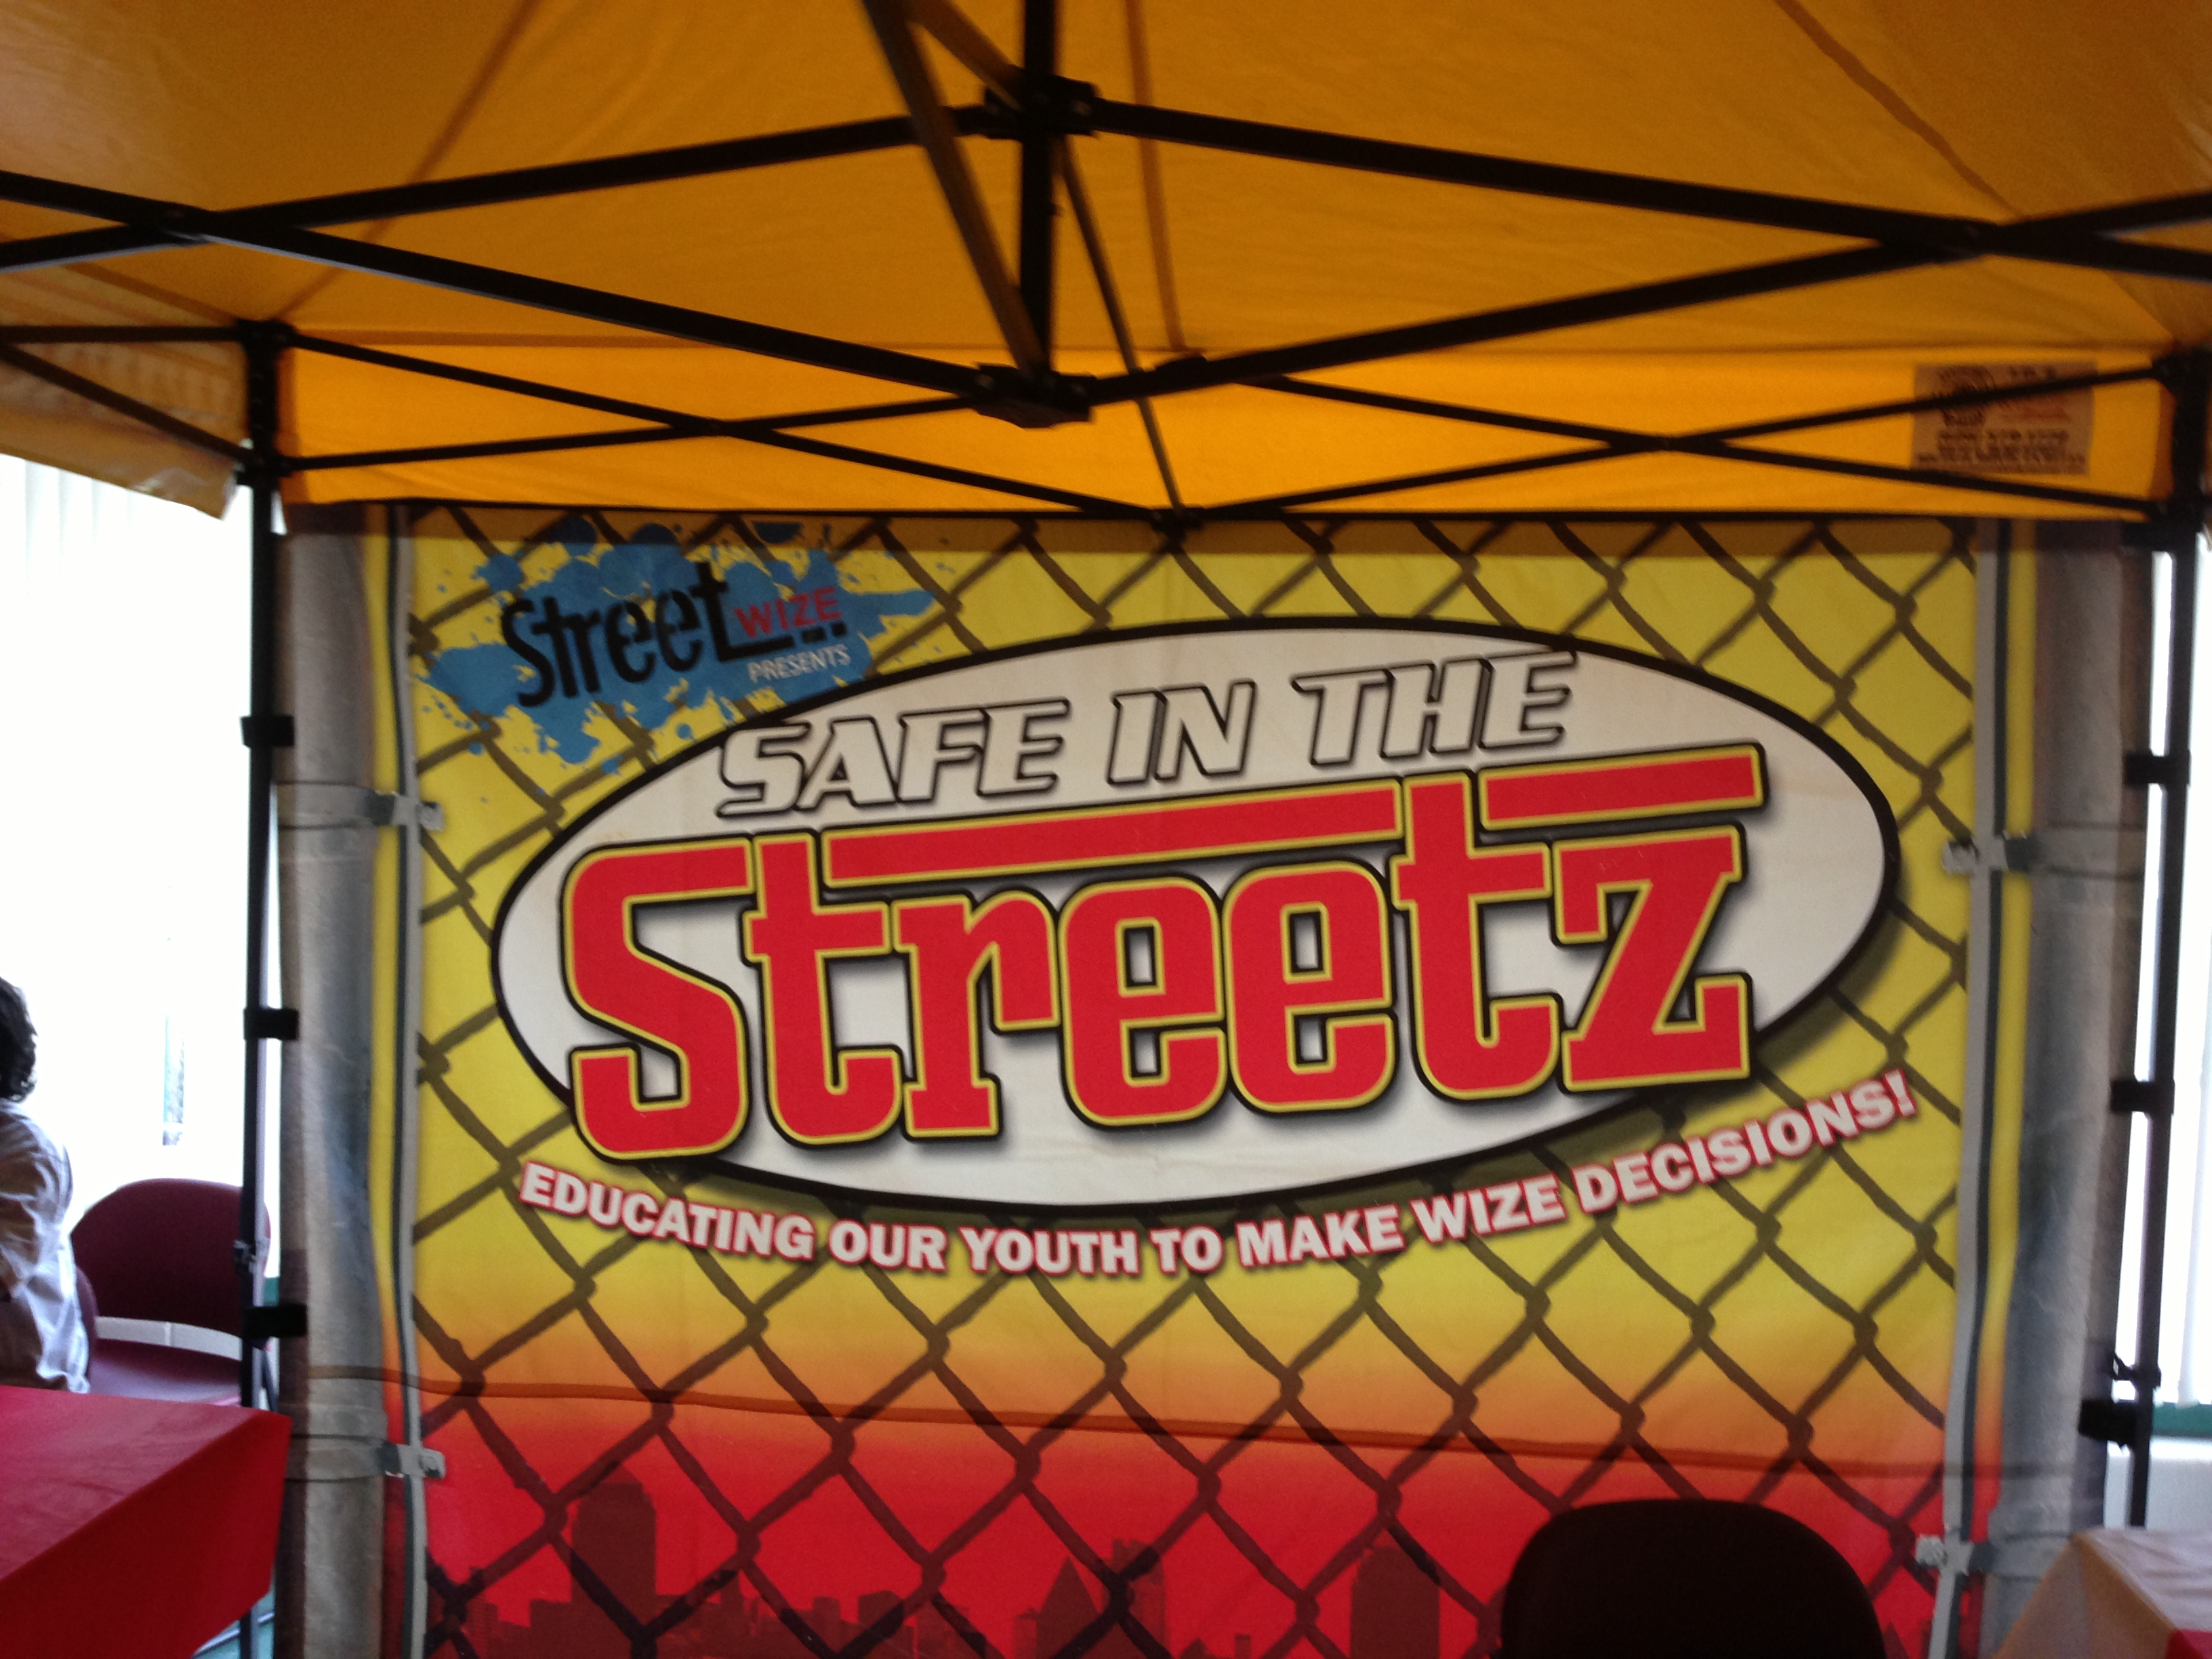 The 2013 MOCO Teen Summit is Safe in the Streetz!